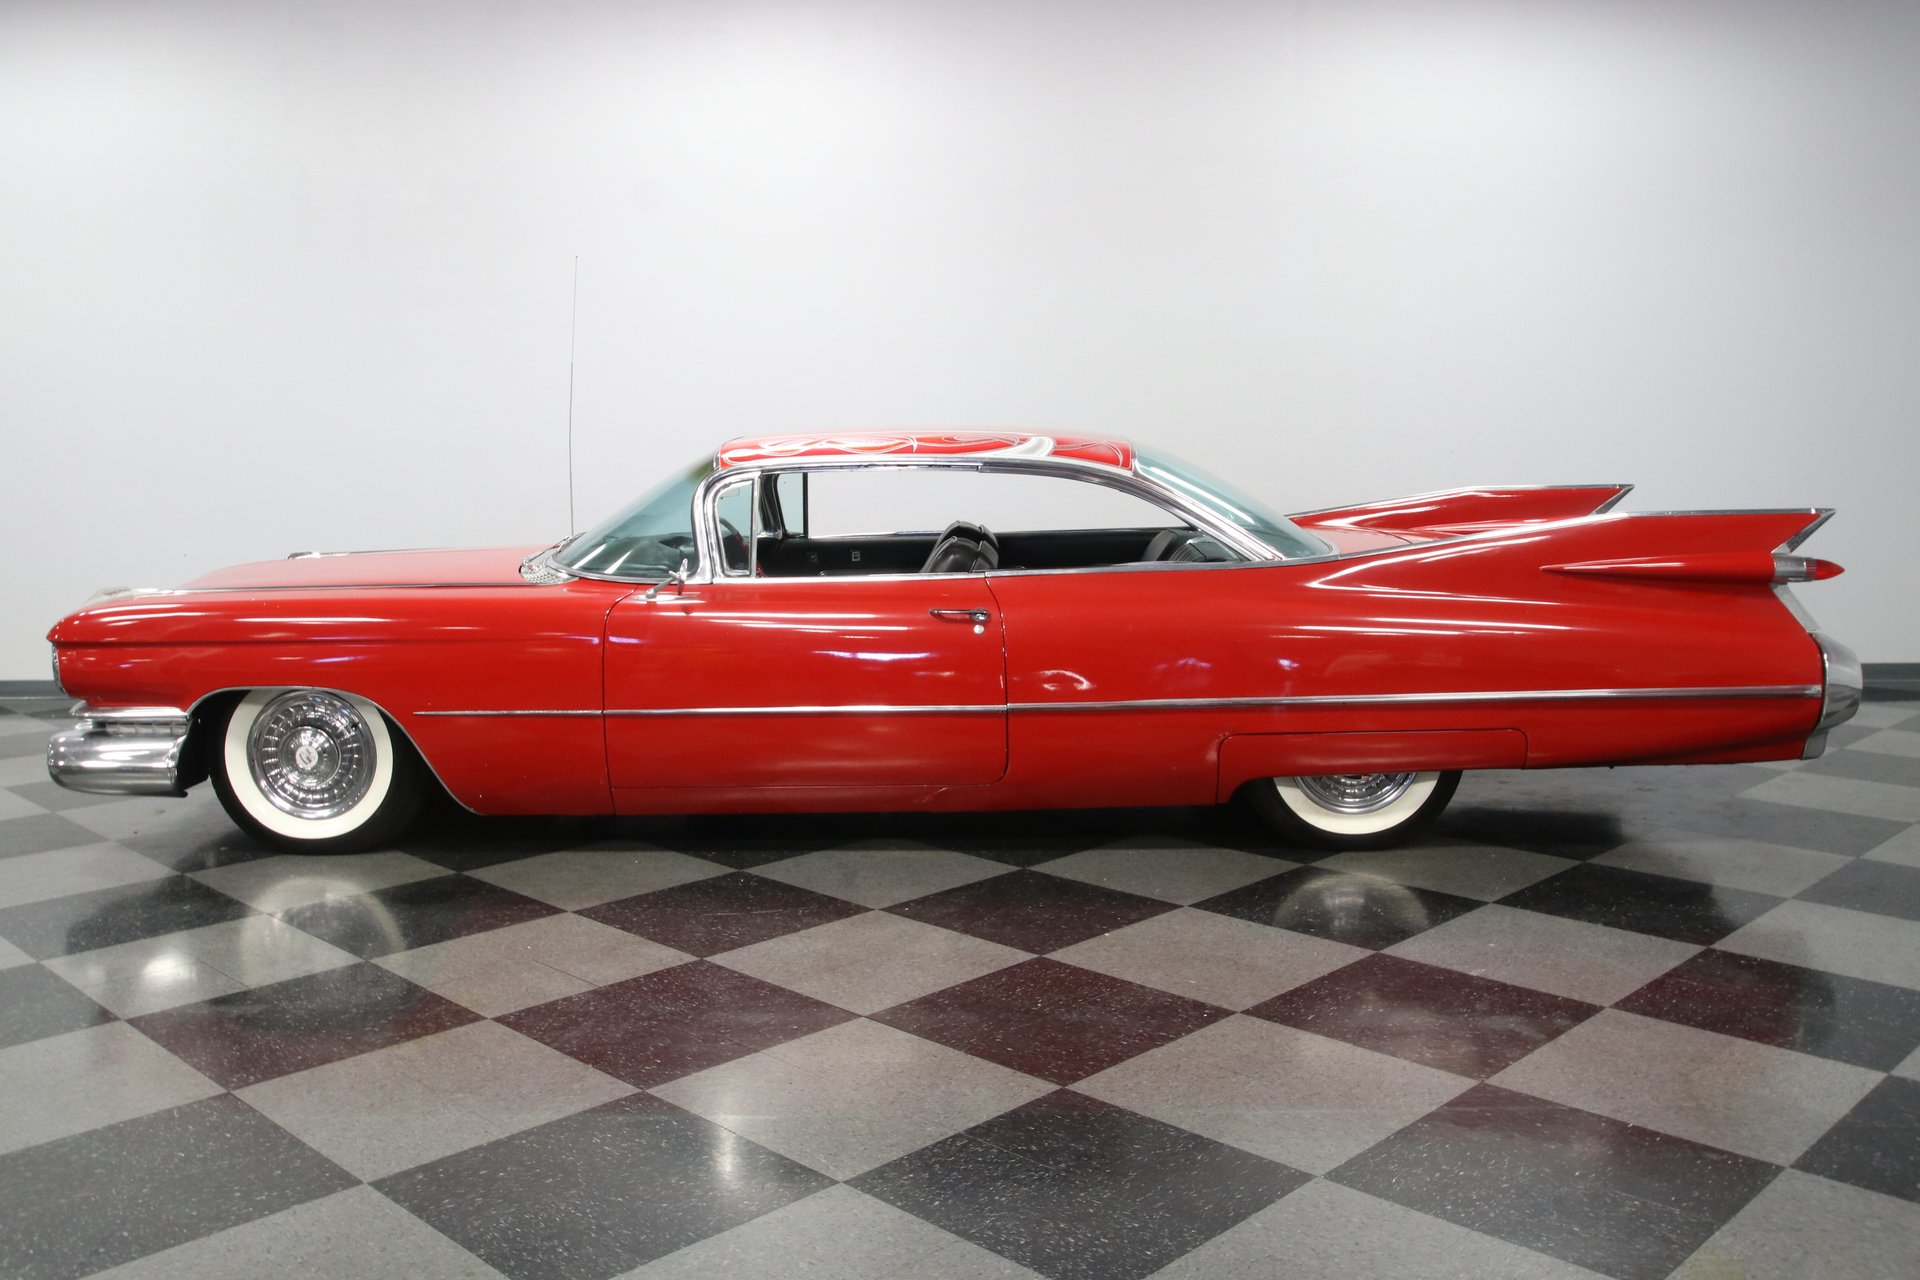 1959 cadillac series 63 coupe deville